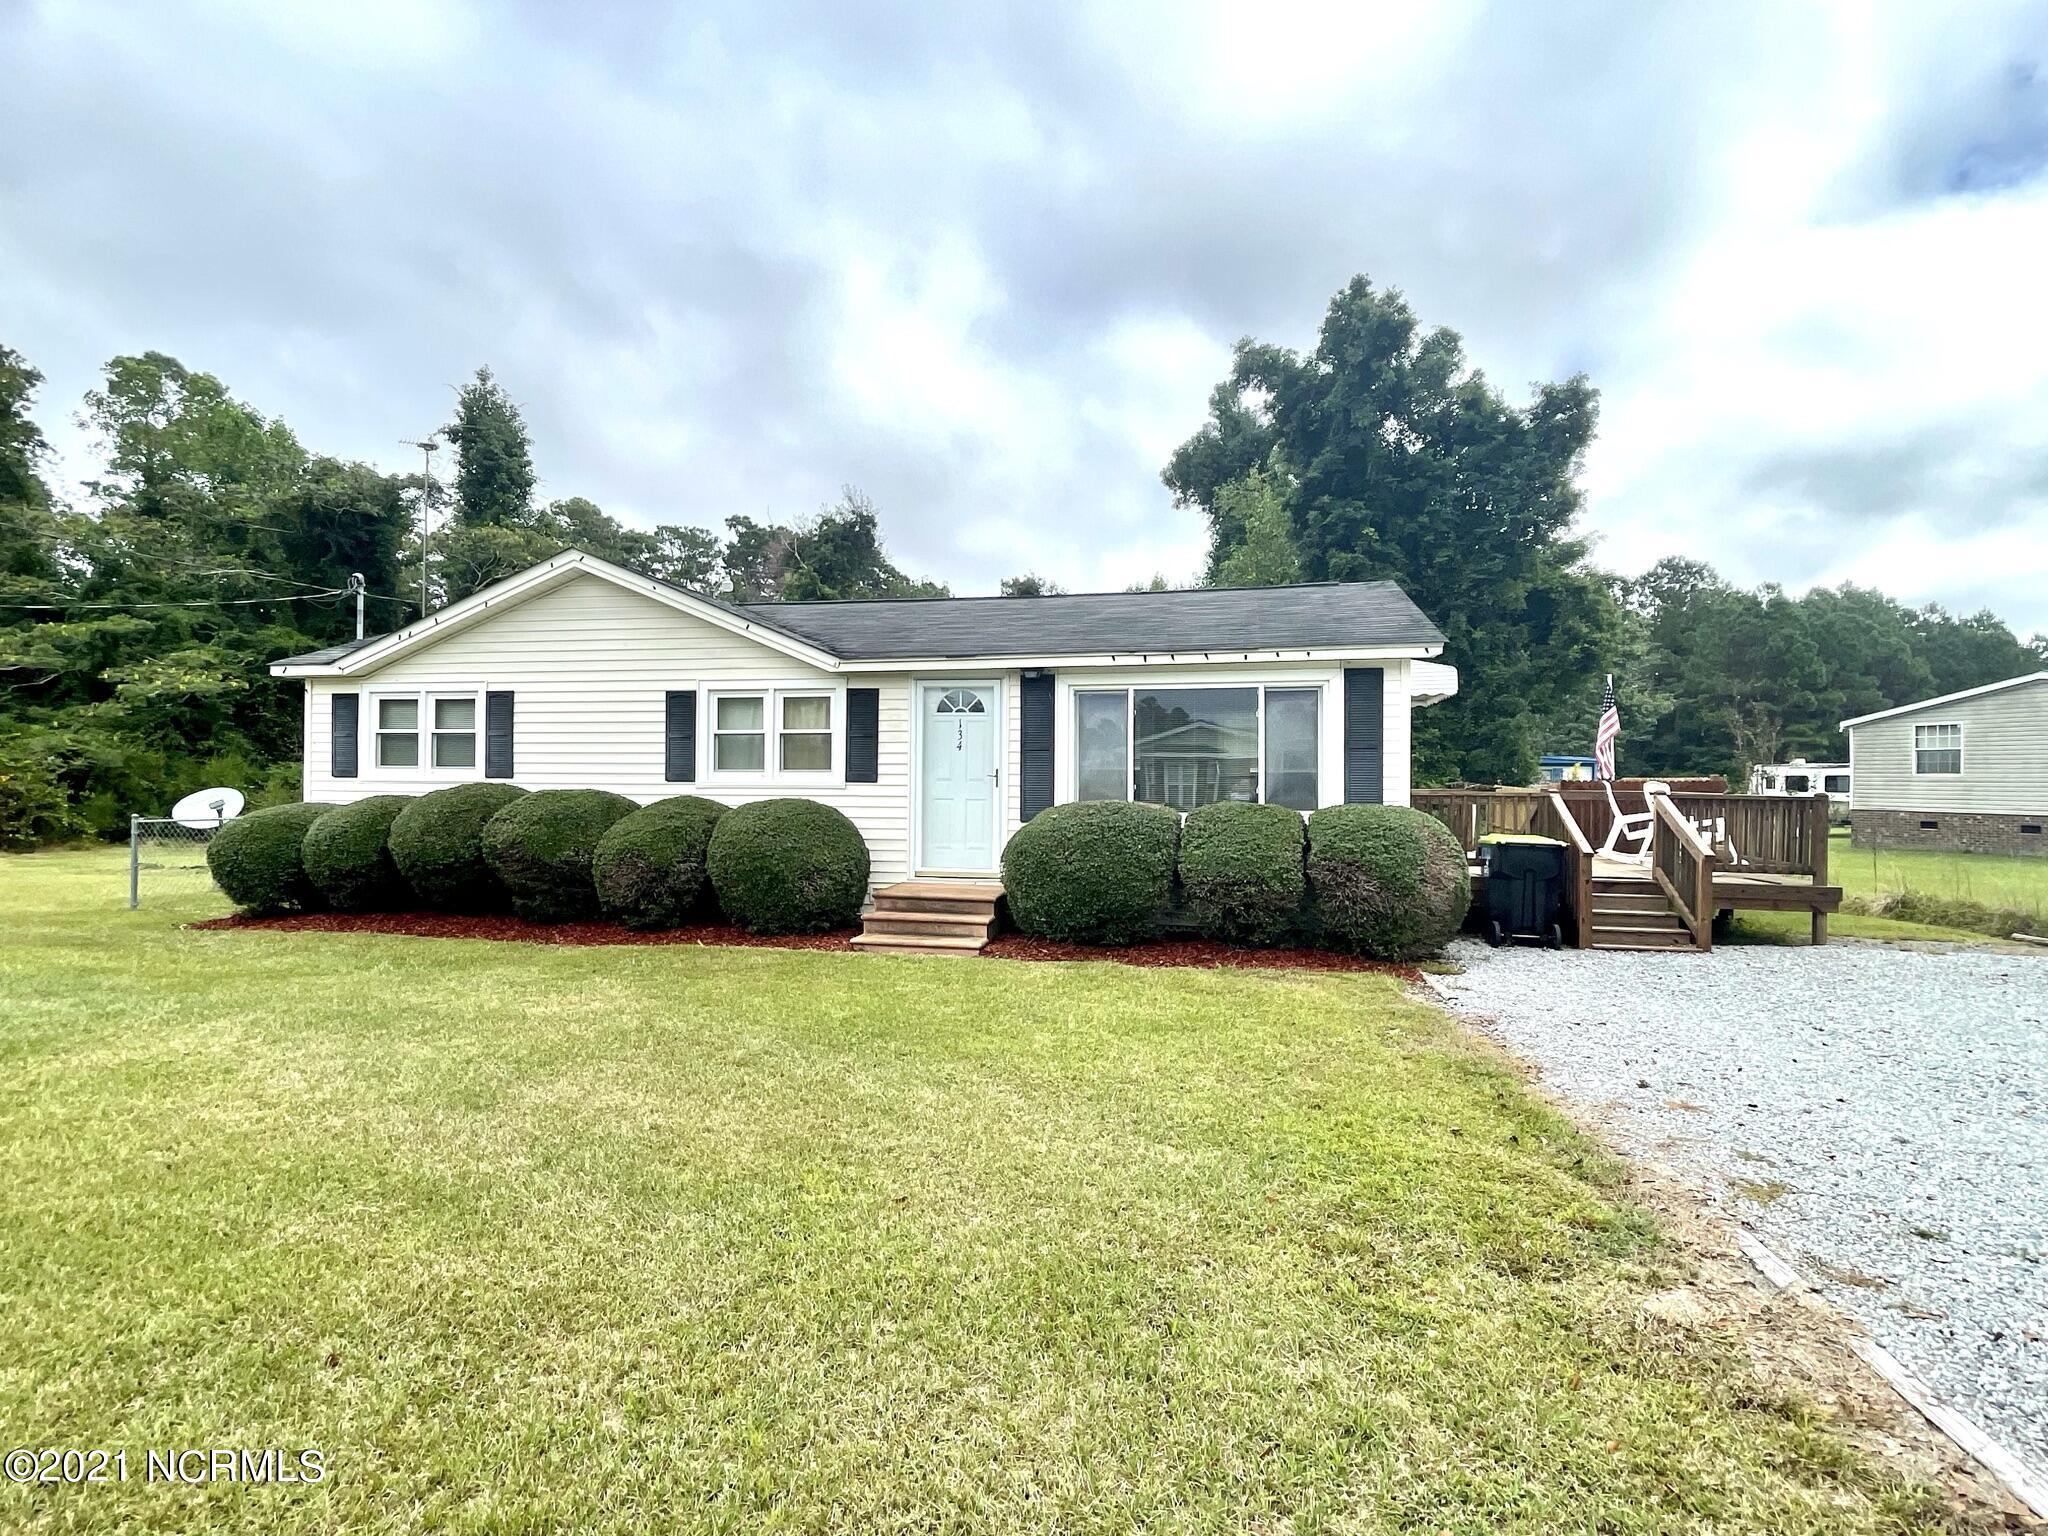 Cozy cottage home with open concept living room and kitchen. Spacious side porch and large backyard. All on one level. LVP flooring throughout. Butcher block island, new water heater, 4'' gravel driveway. Tons of potential to make it your own with NO CITY TAXES.